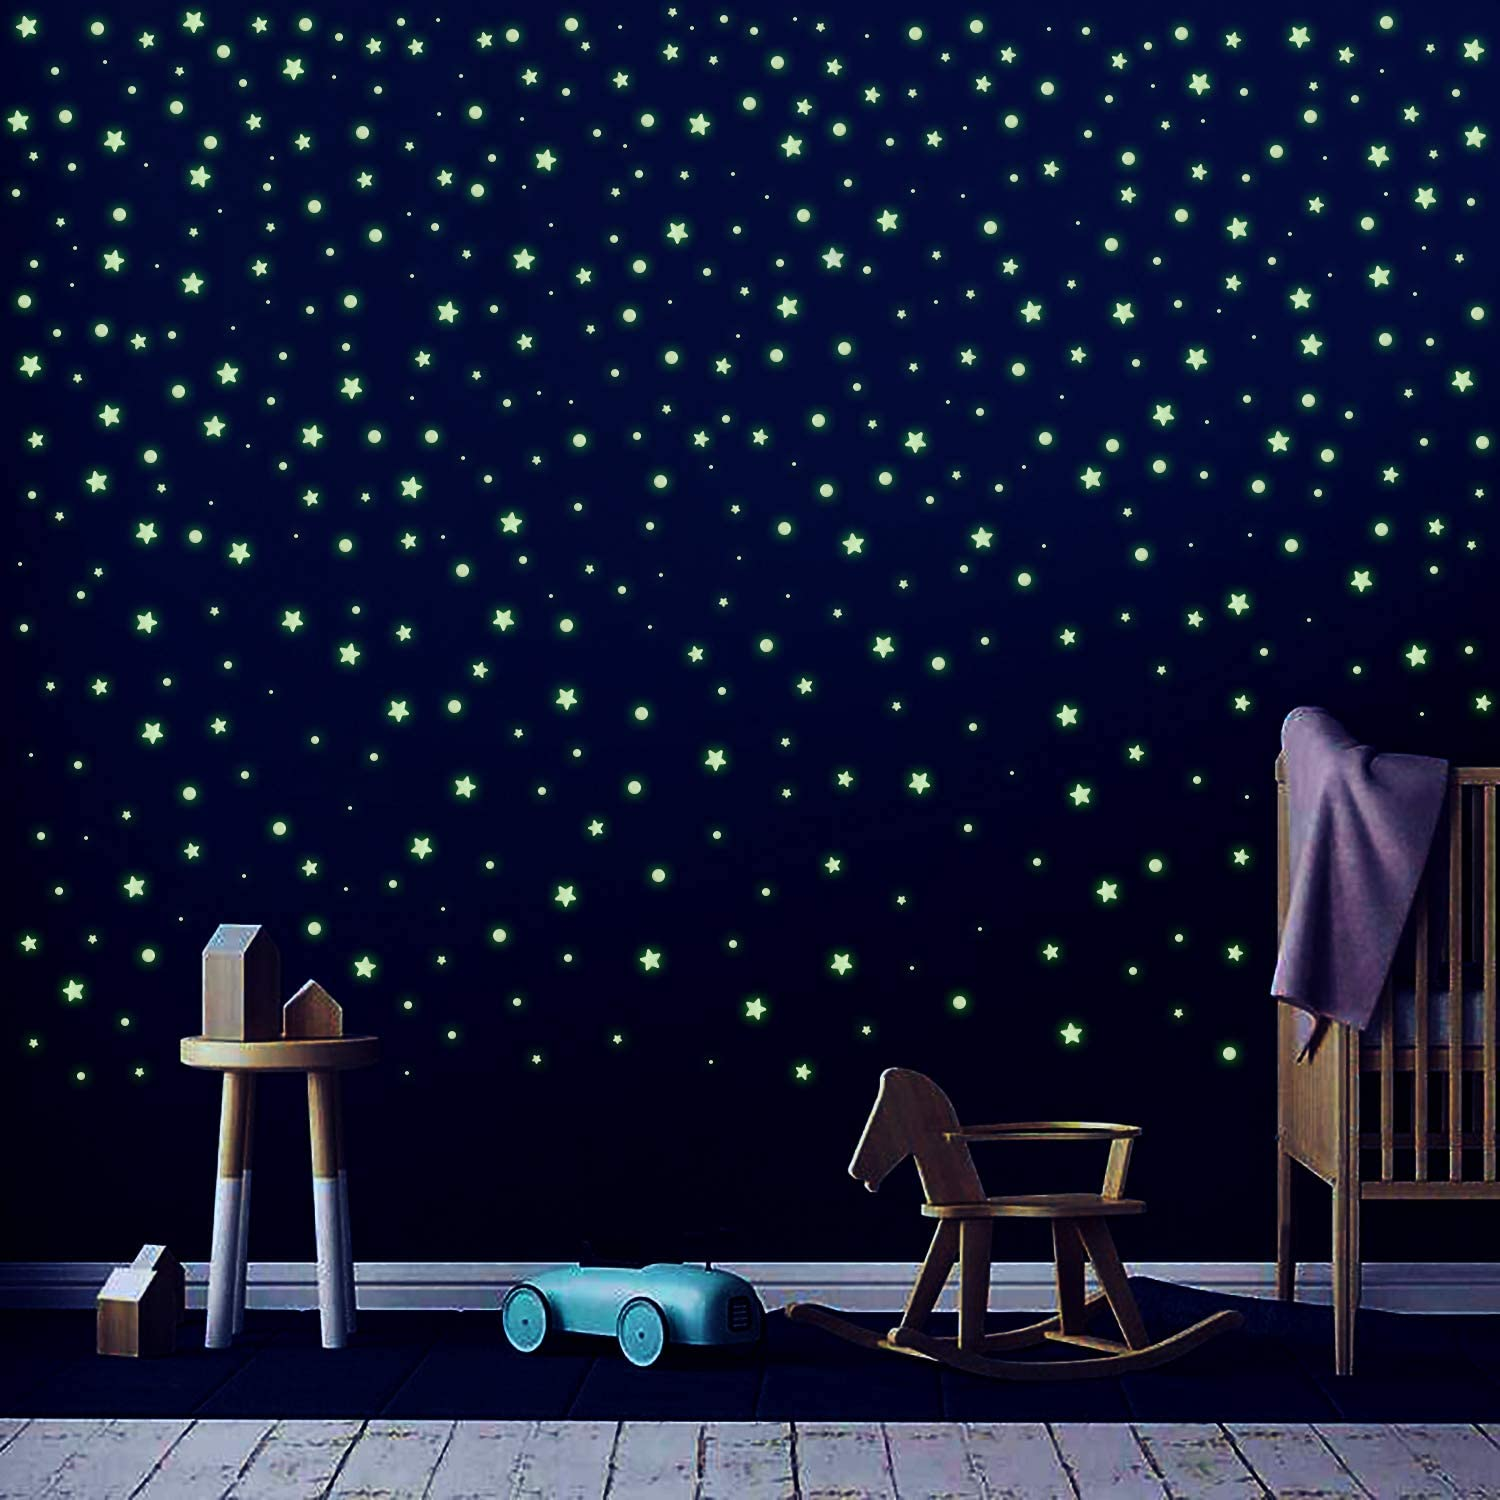 WATINC 1248Pcs 3D Glow in The Dark Stickers Domed Dots Stars Realistic Glowing Decor Sticker for Kids Room Ceiling Wall Decals Decorations for Christmas Party Birthday Gift for Little Girls Boys